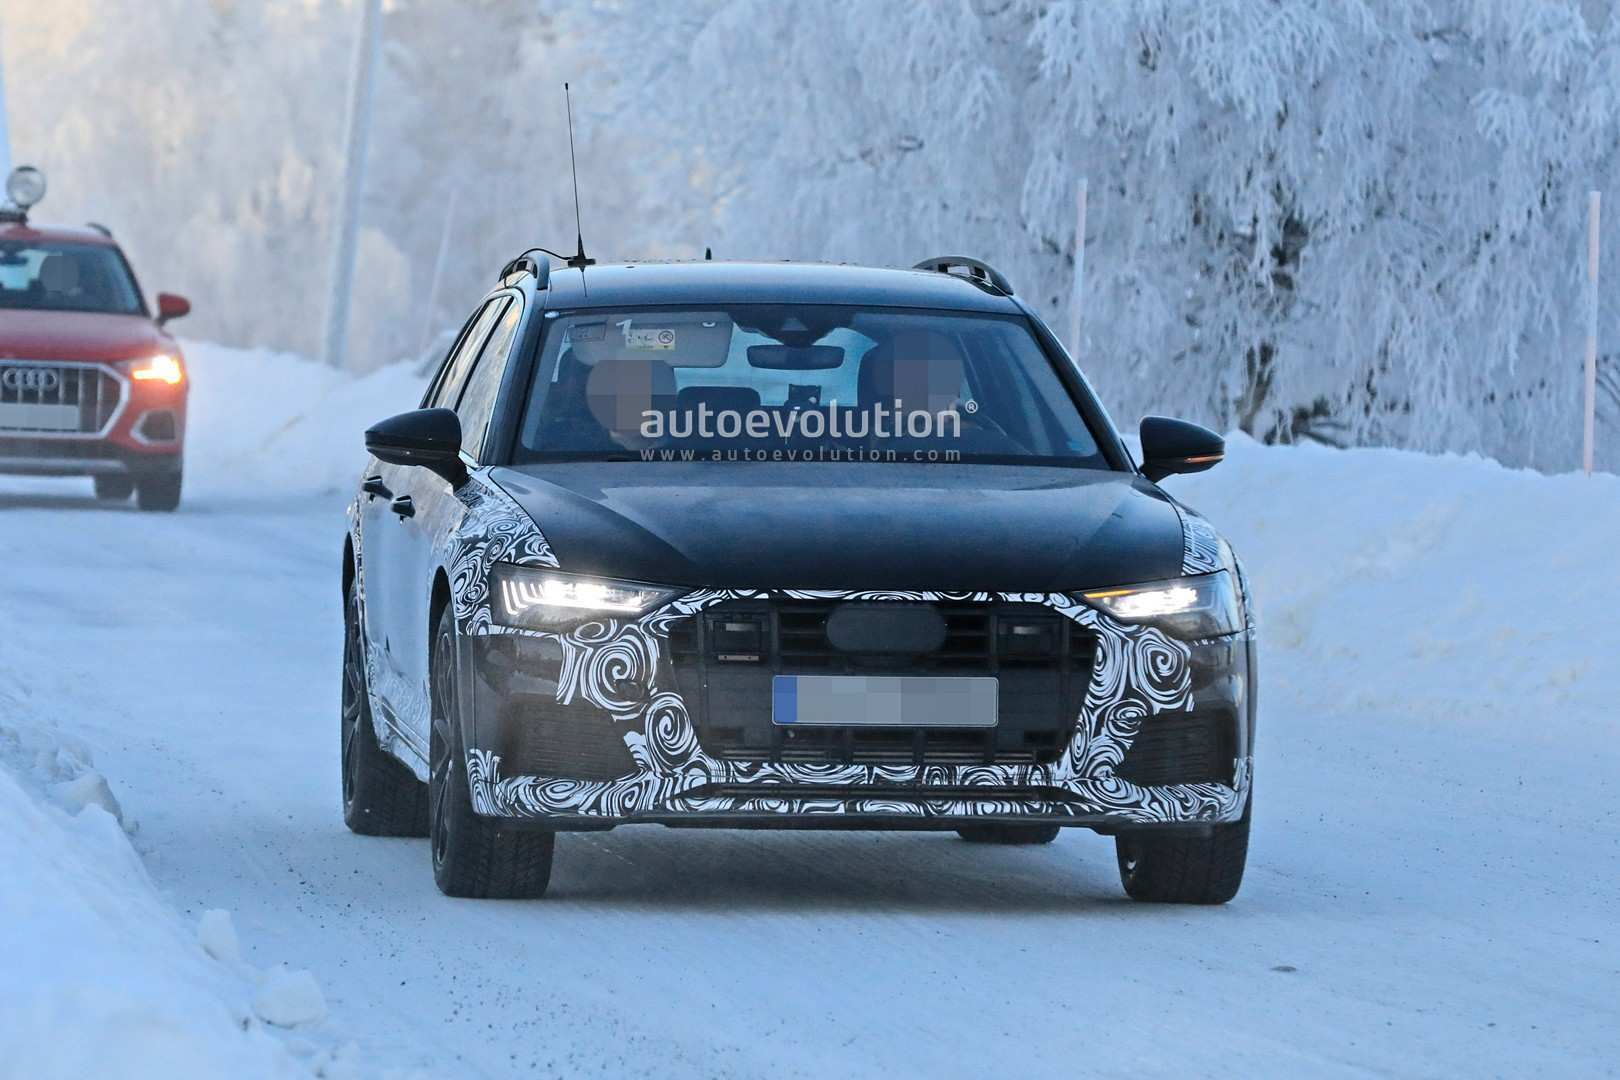 45 All New 2020 Audi Allroad Concept